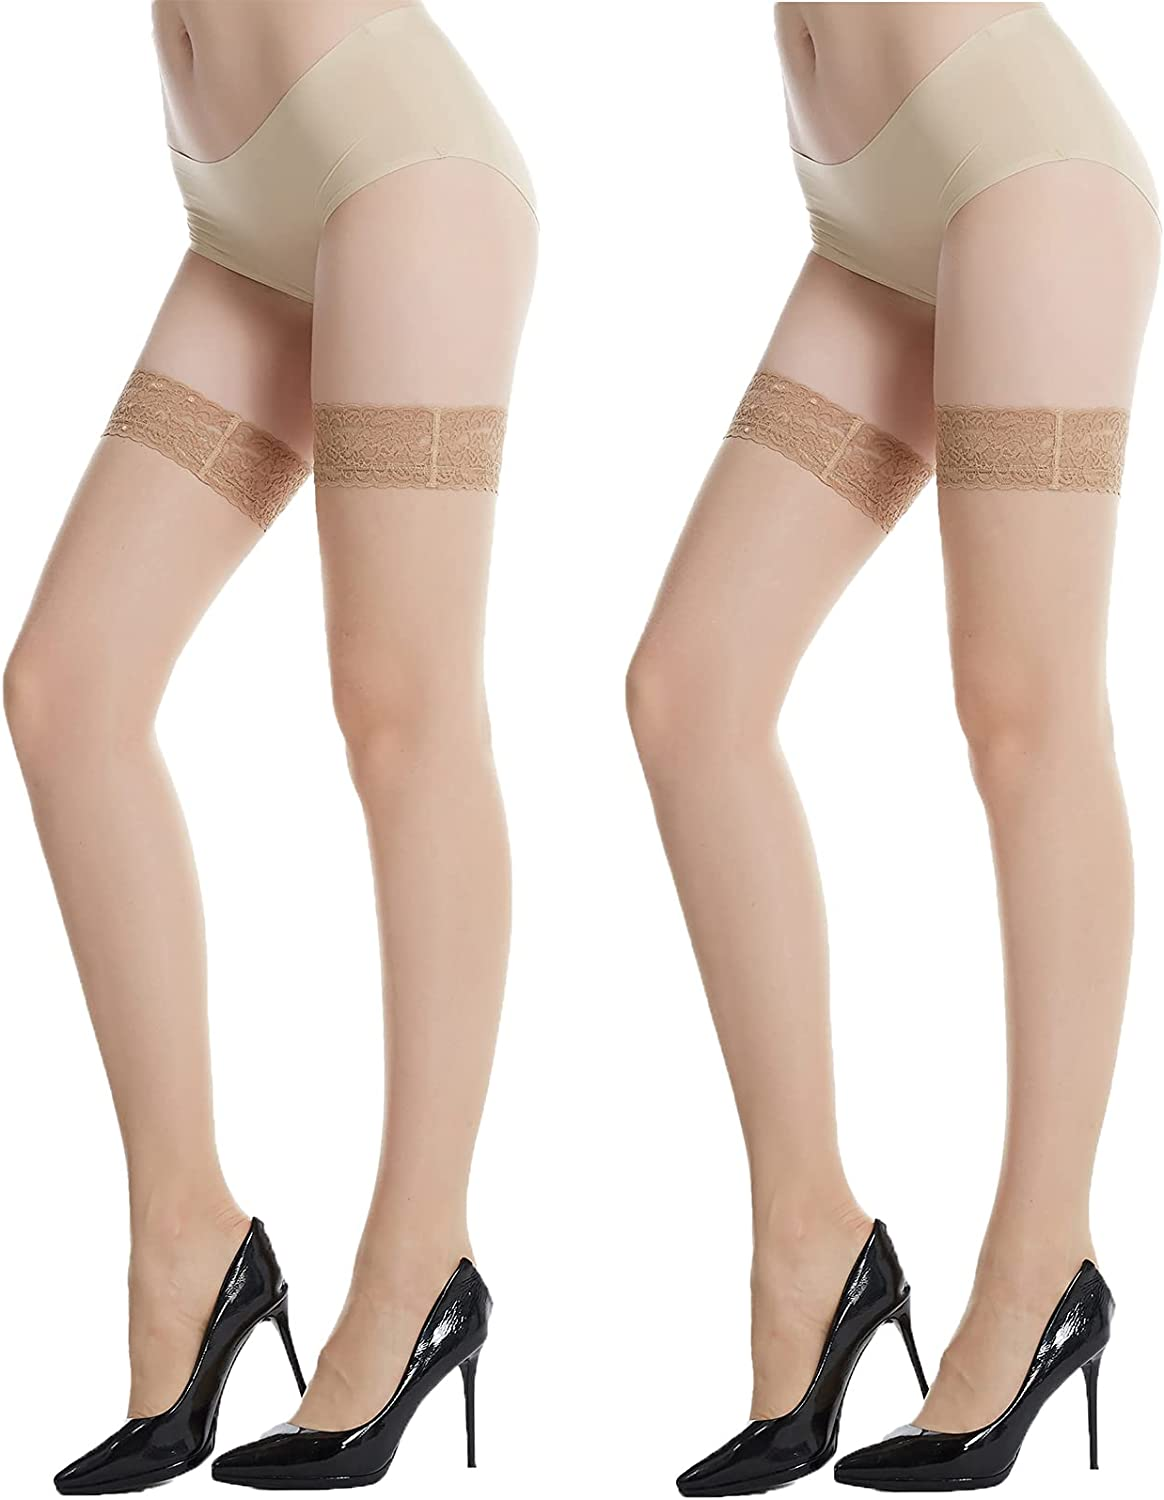 Sheer Thigh High Stocking, 2Pack Silicone Lace Top Socks, Nylon Silk Reflection Stay Up Tights for Women, Girls Lingerie